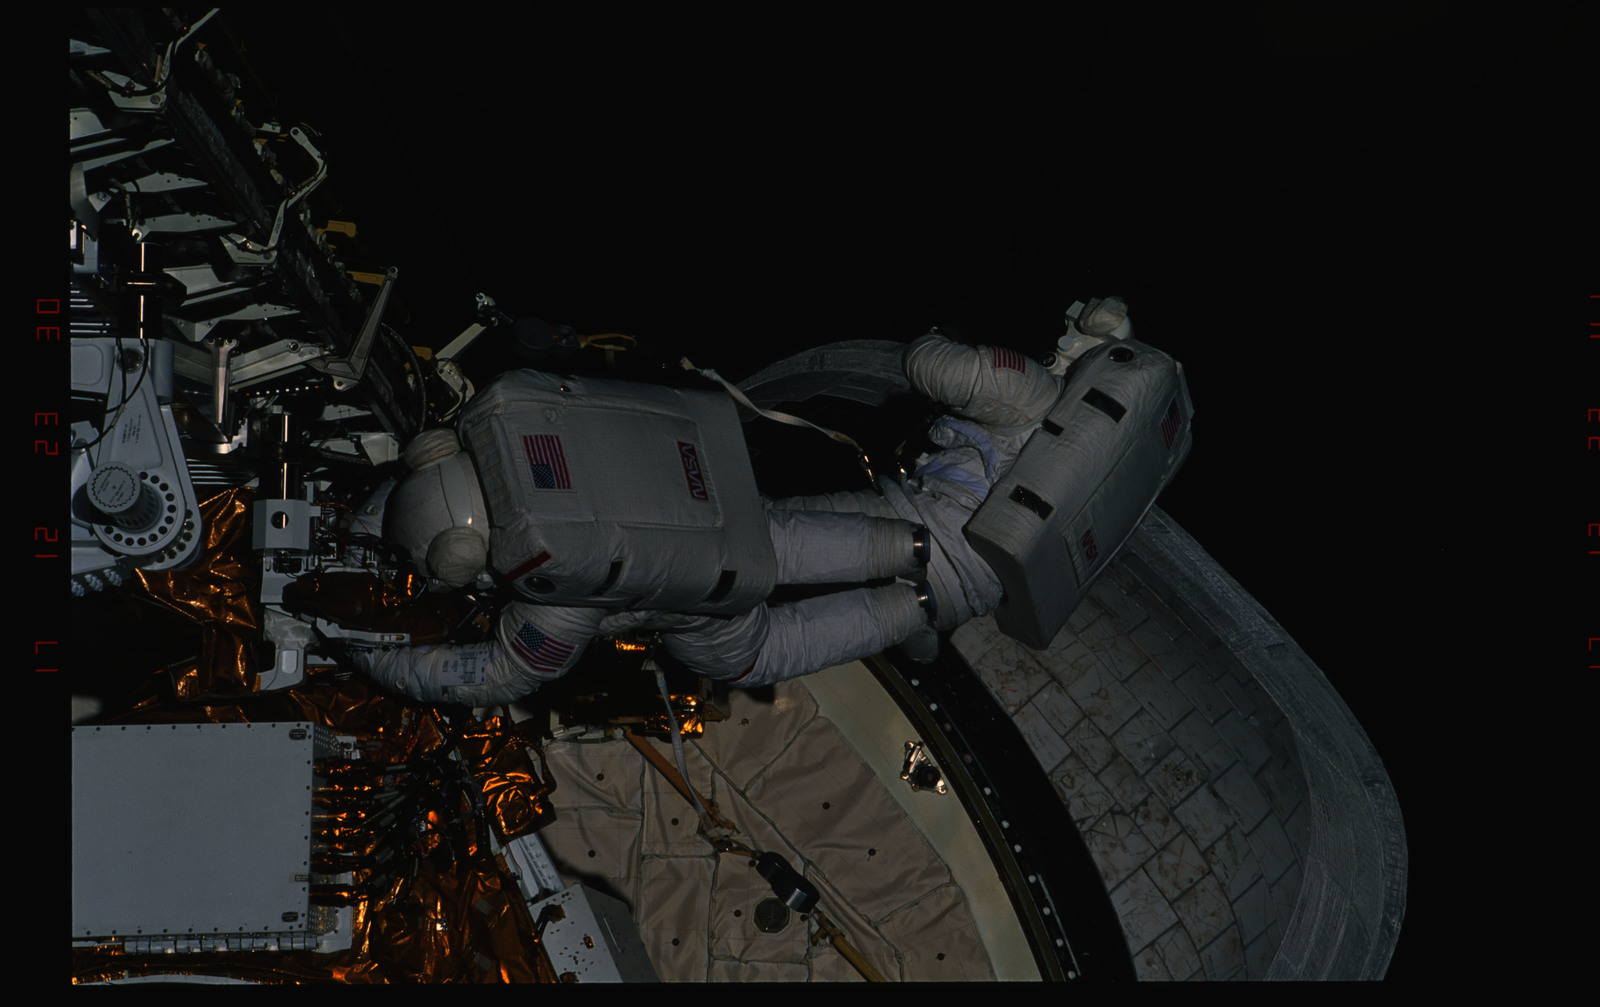 STS054-33-014 - STS-054 - Views of EVA Crewmembers working in the payload bay.